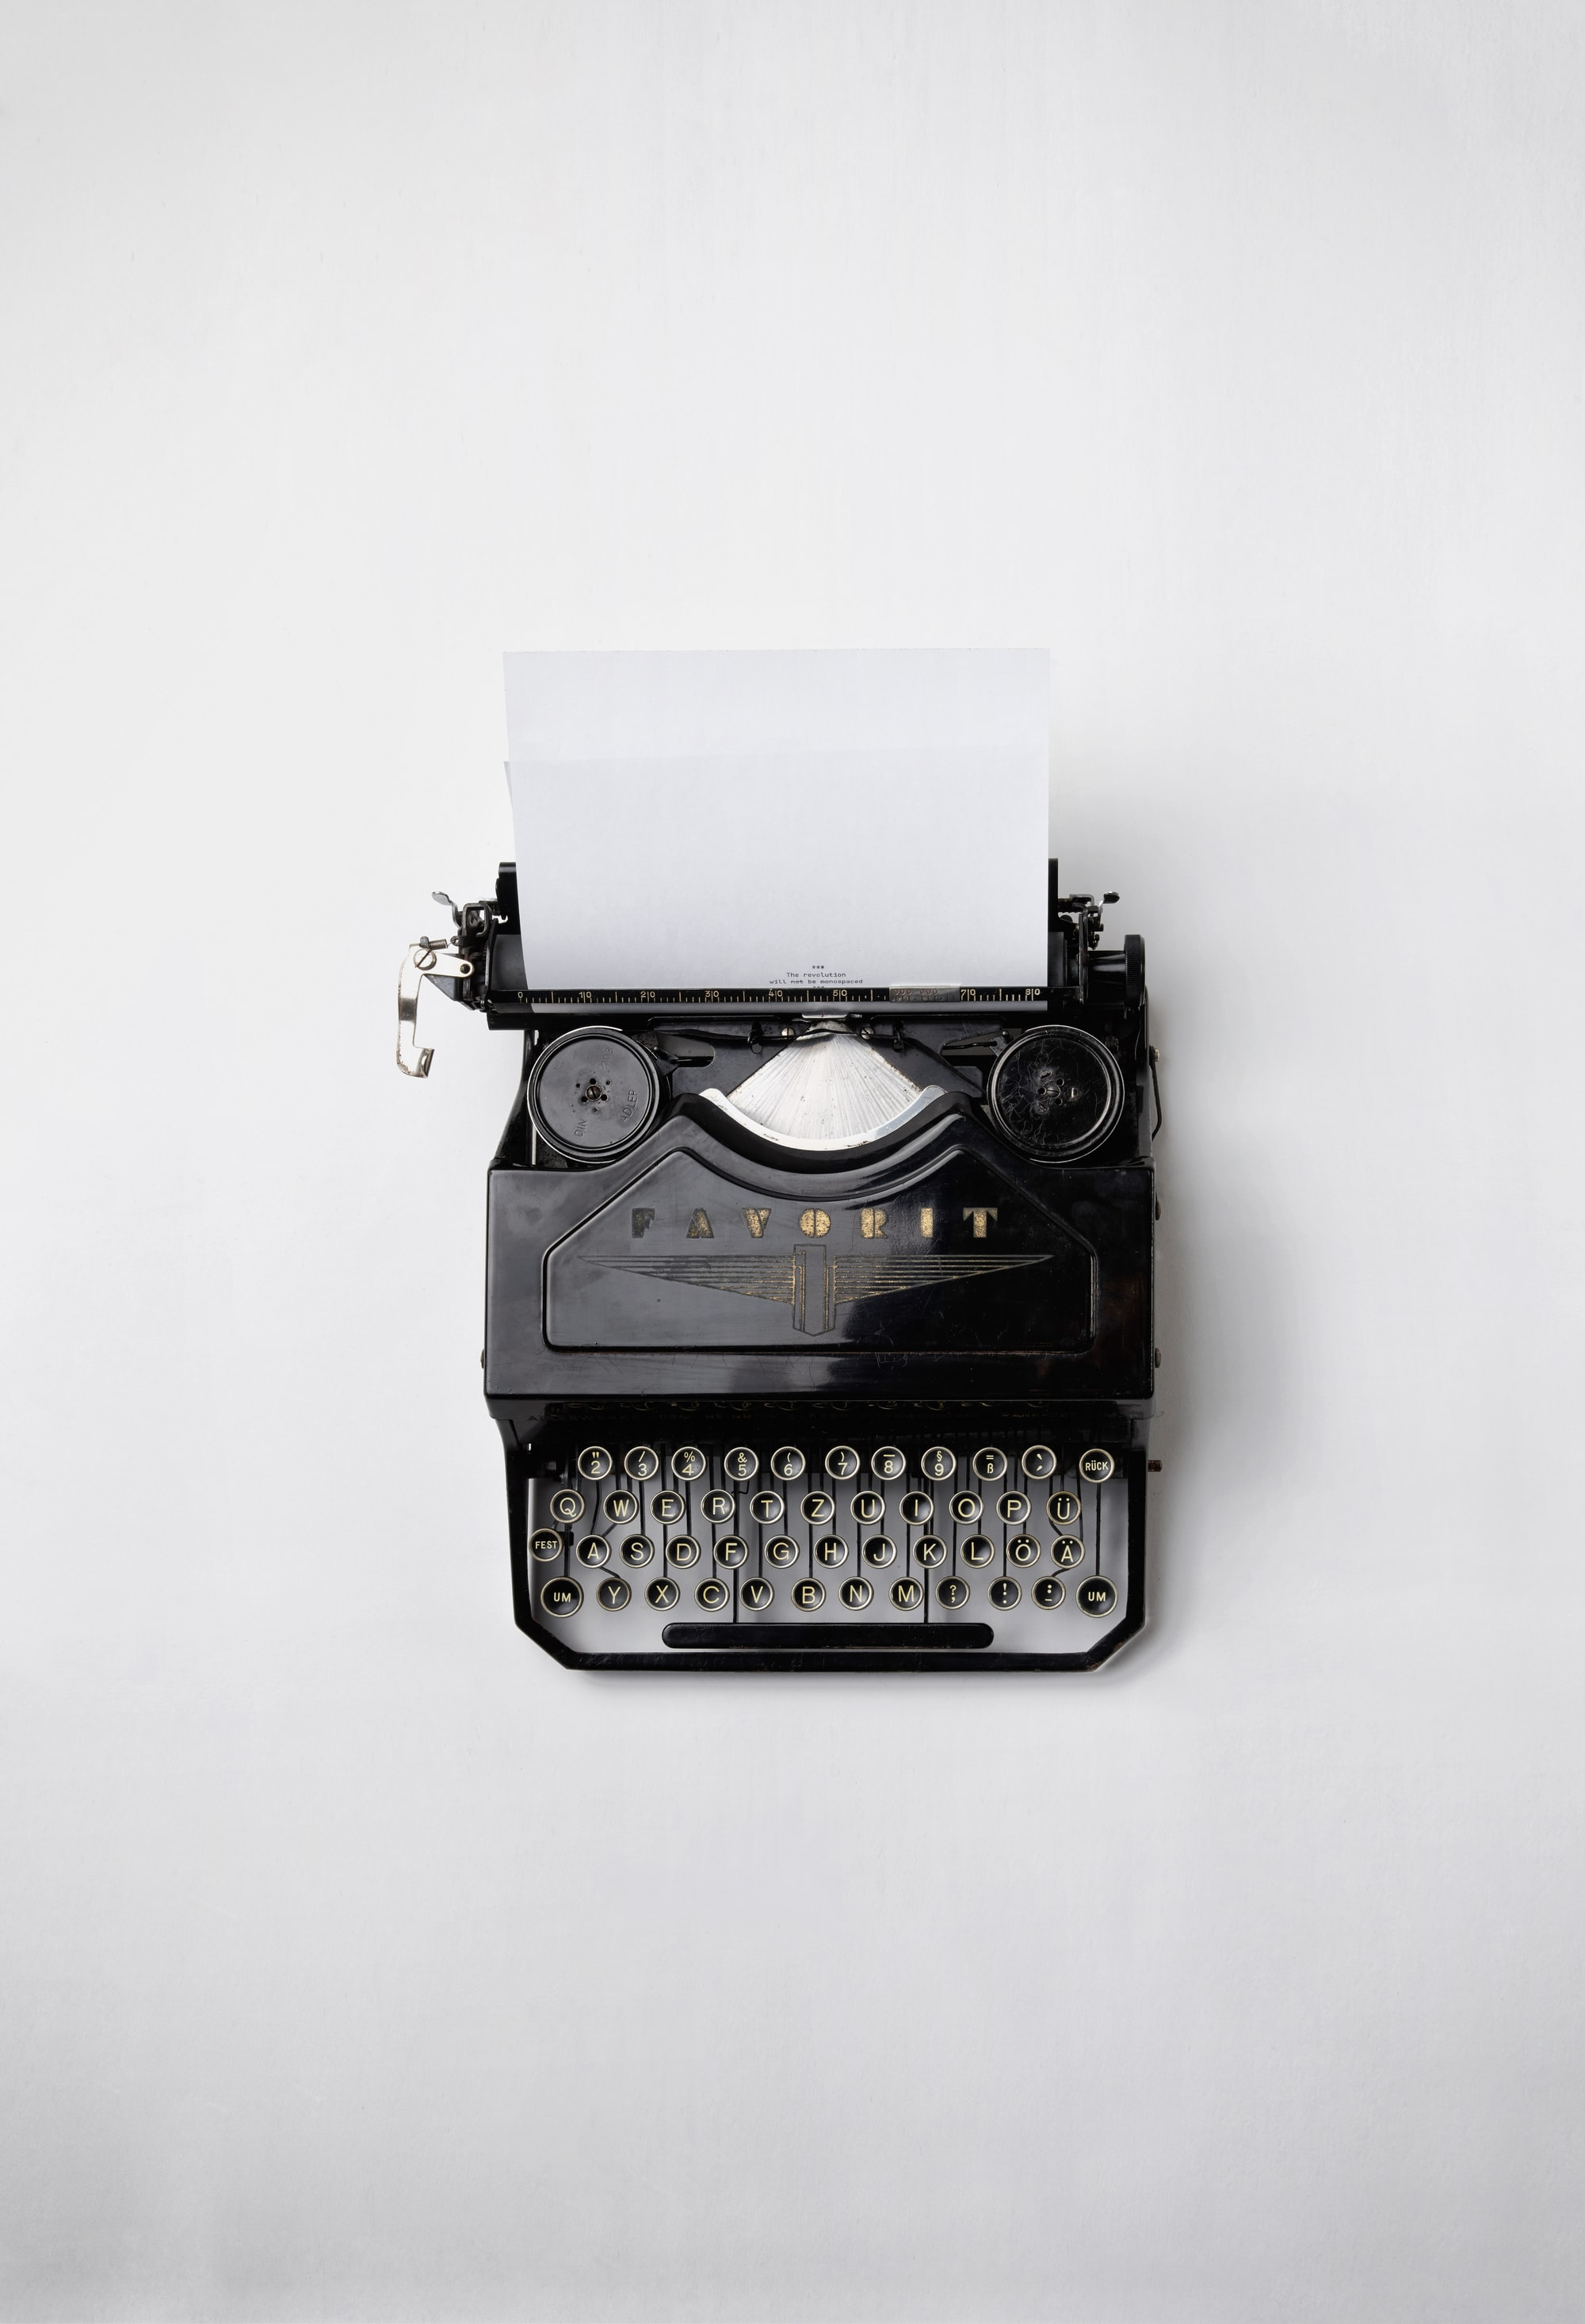 Advice for How To Write A Novel From Someone Yet To Finish One